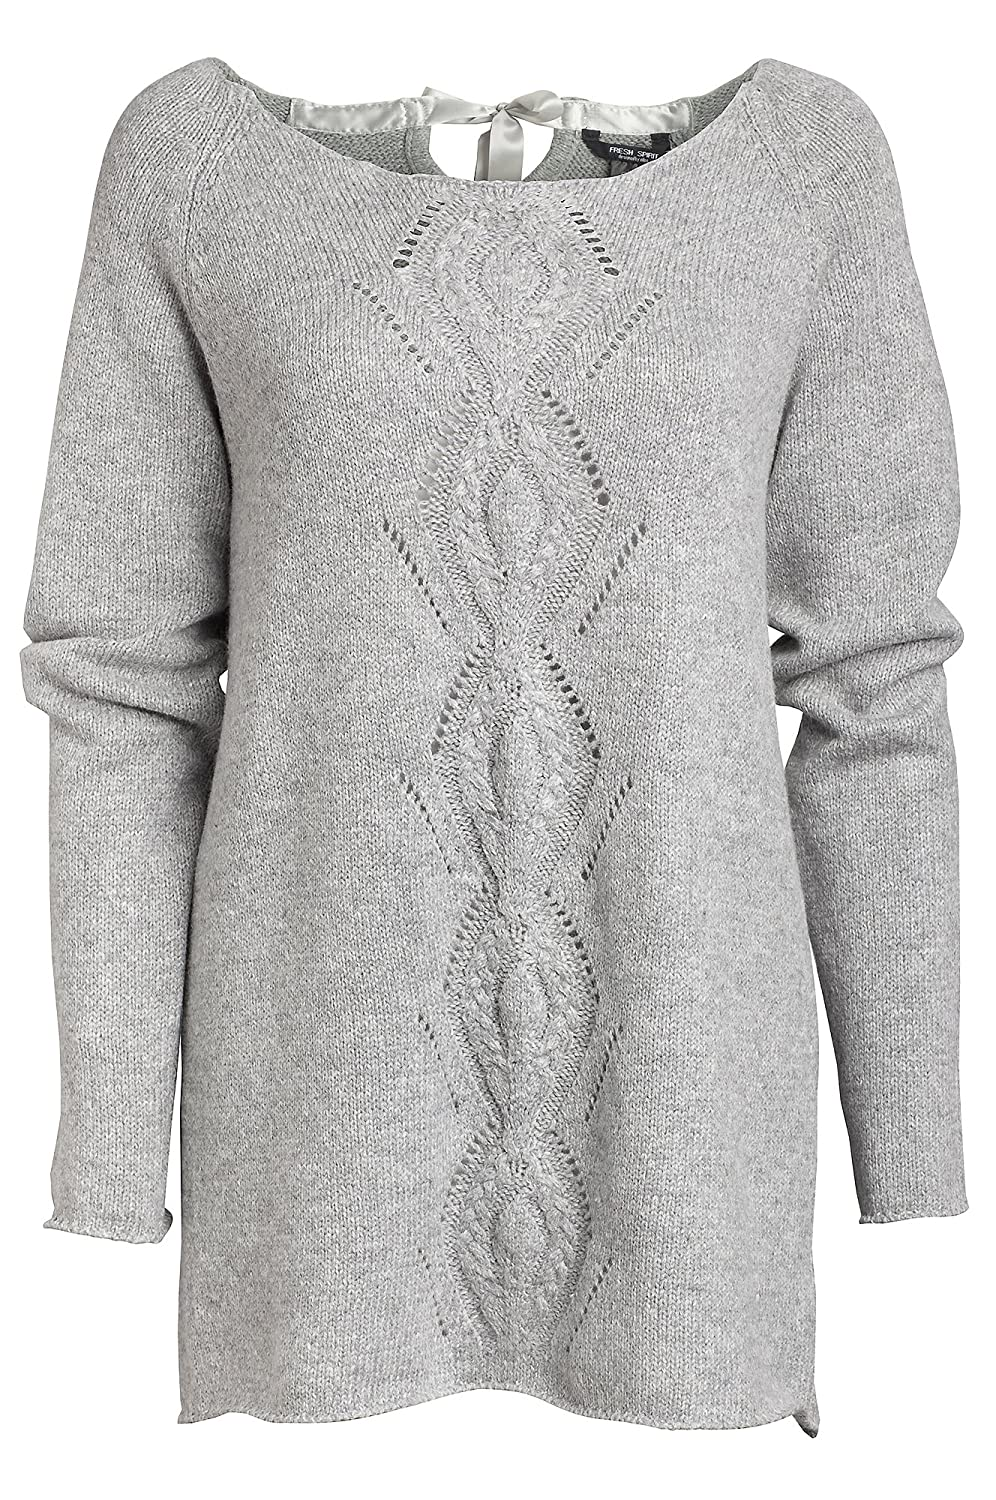 9190297b204 Ladies Long Grey Soft Cotton Wool Jumper in Womens Plus Sizes 16-30  Amazon.co.uk   Clothing